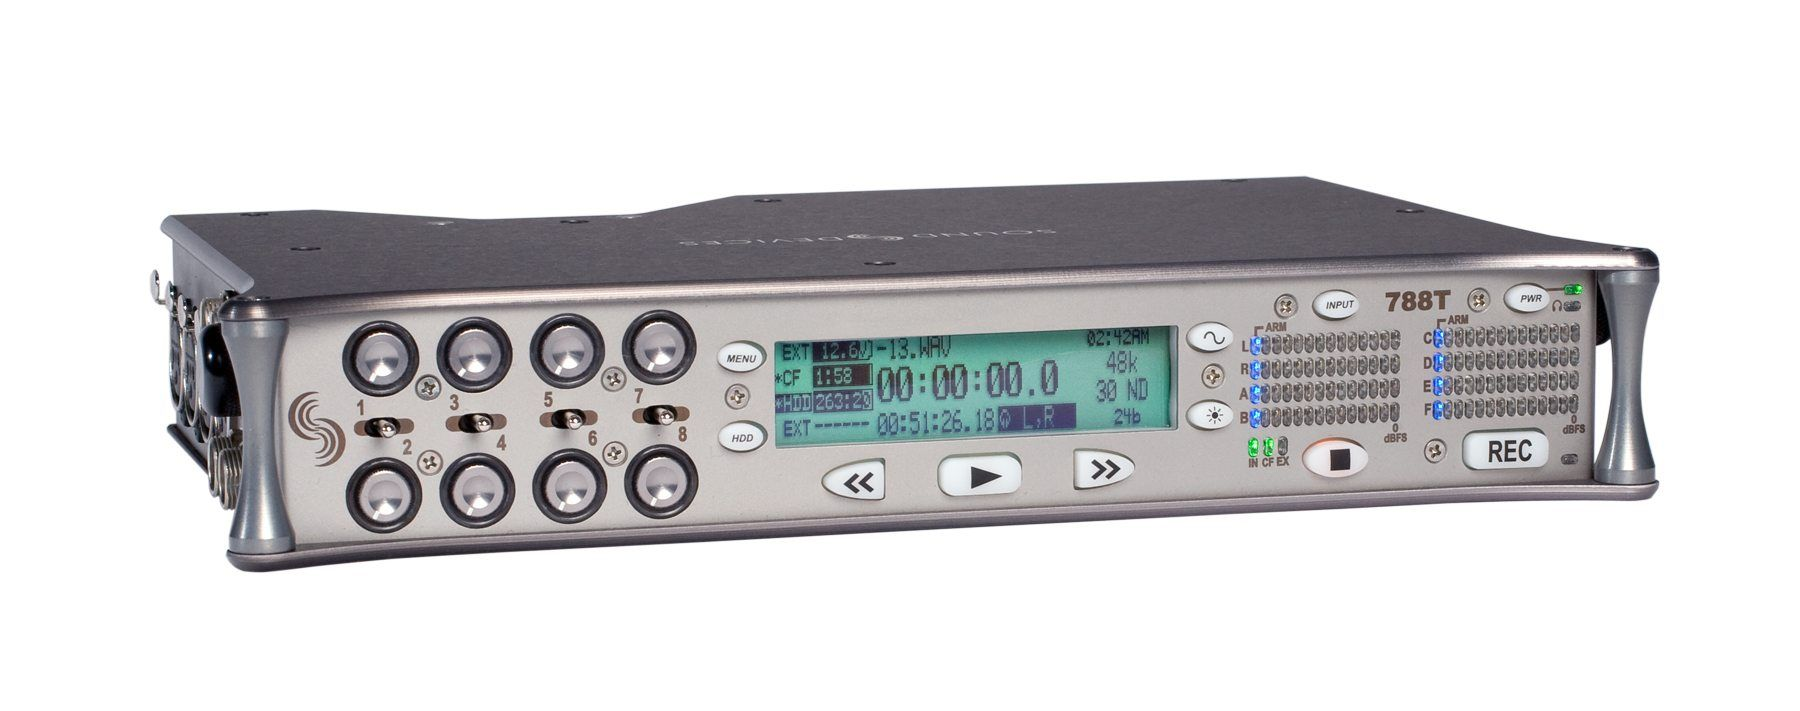 Sound Devices 788T Digital Audio Recorder at Hollywood Sound Systems